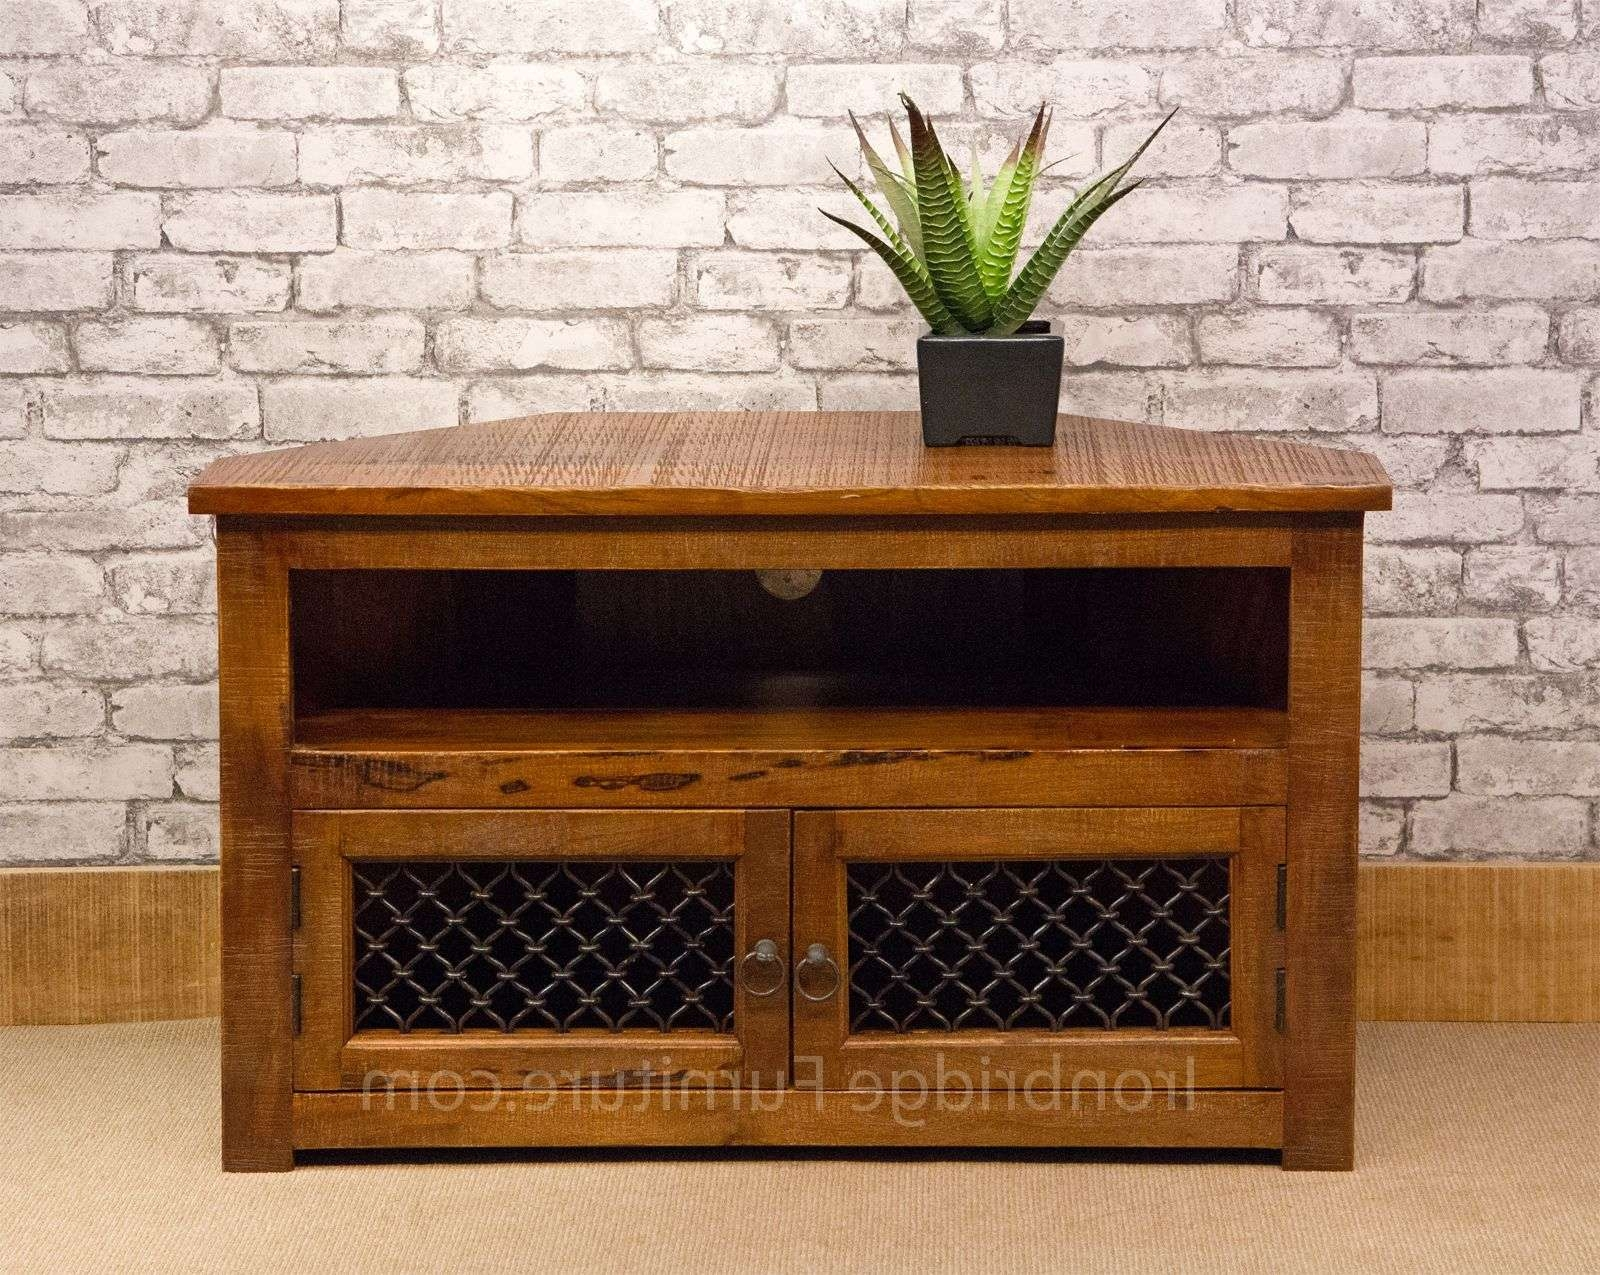 13 Jali Rustic Farm Corner Tv Stand 100Cm Intended For Tv Stands 100Cm Wide (View 1 of 15)